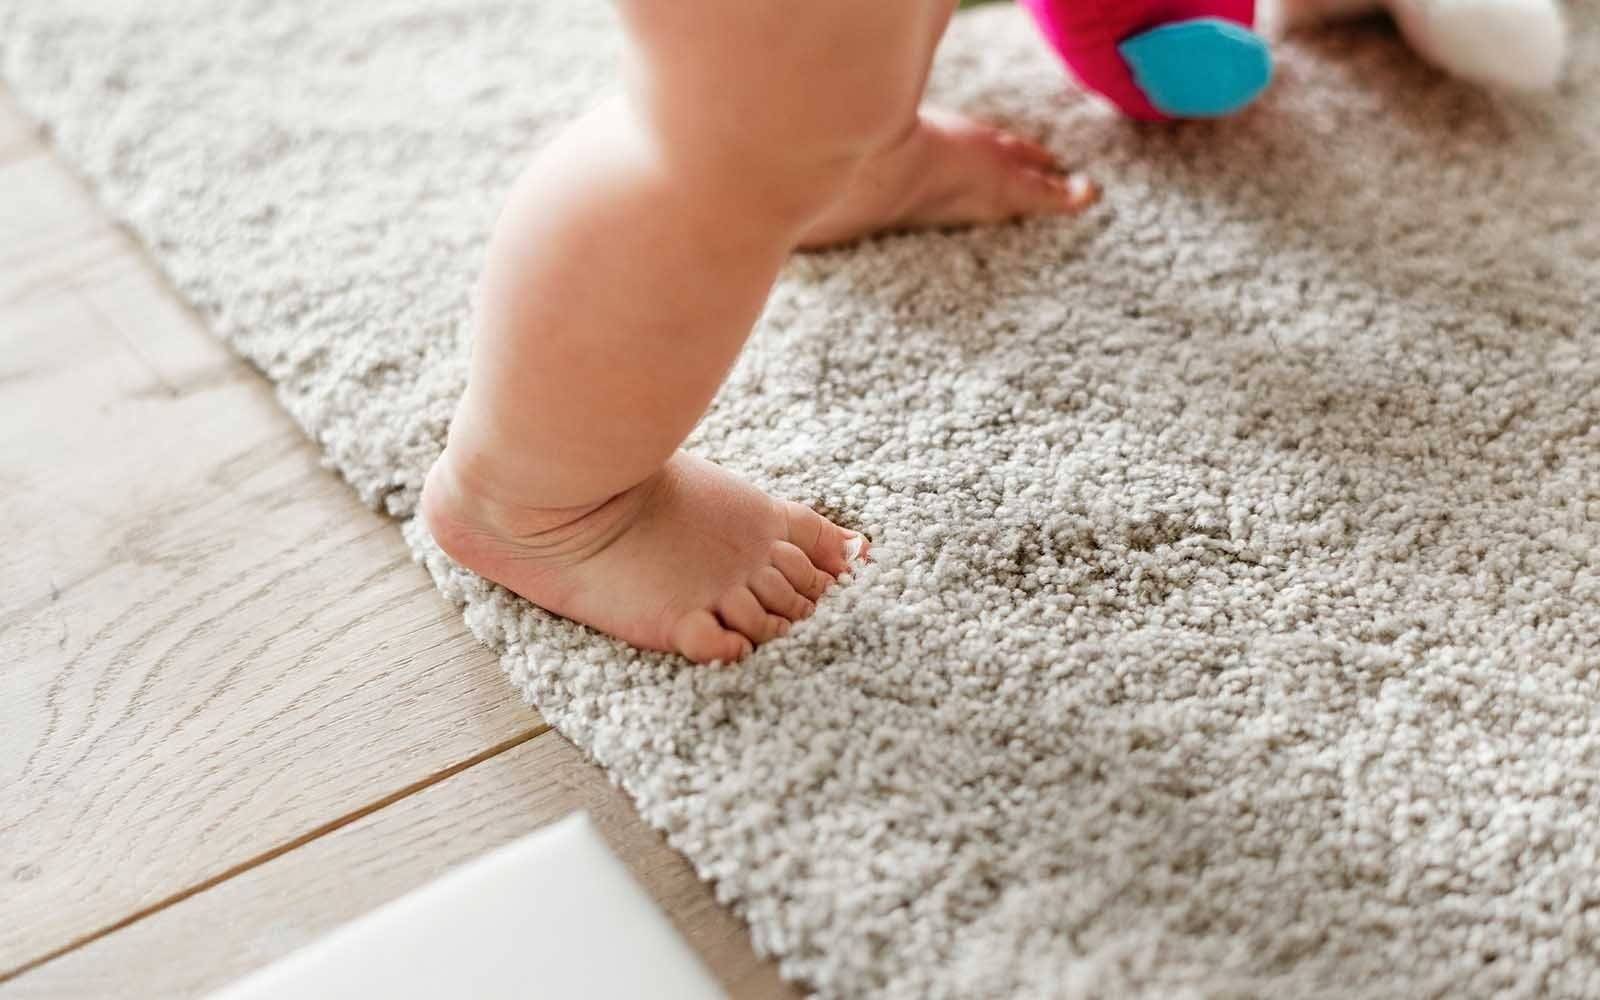 Controlling Dust Mites in Carpeting